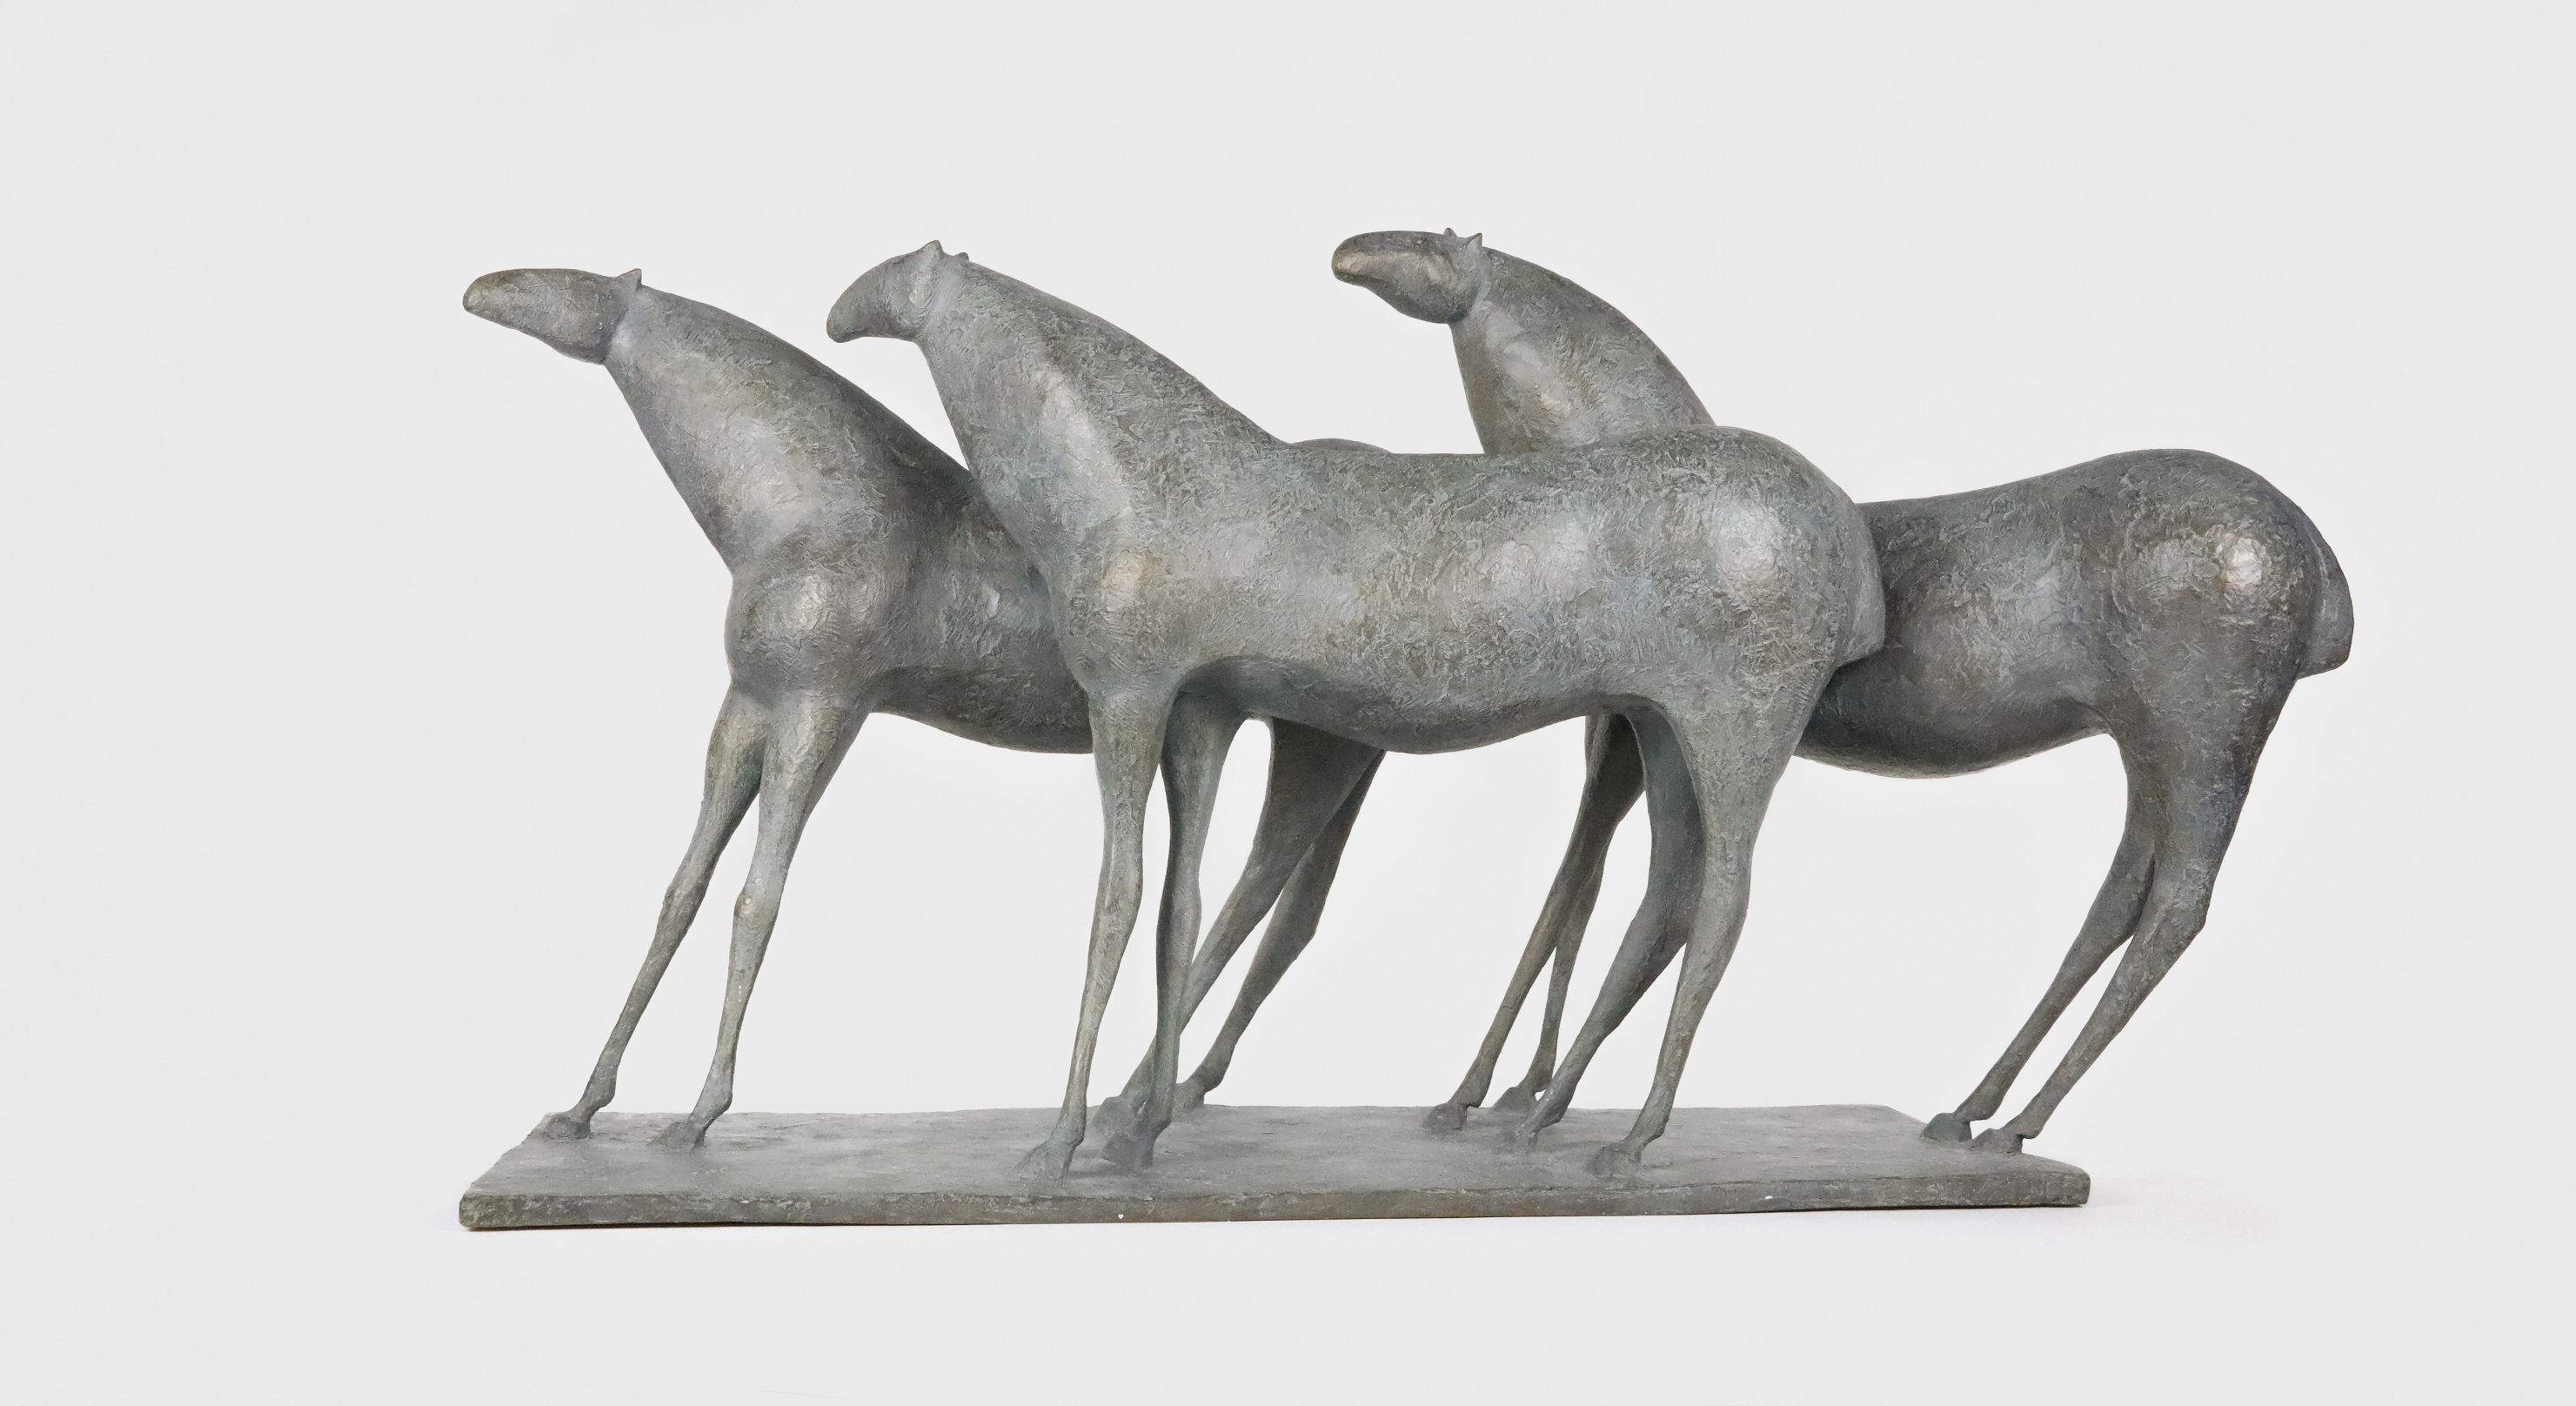 3 Chevaux, Pierre Yermia,Sculpture contemporaine, detail 3